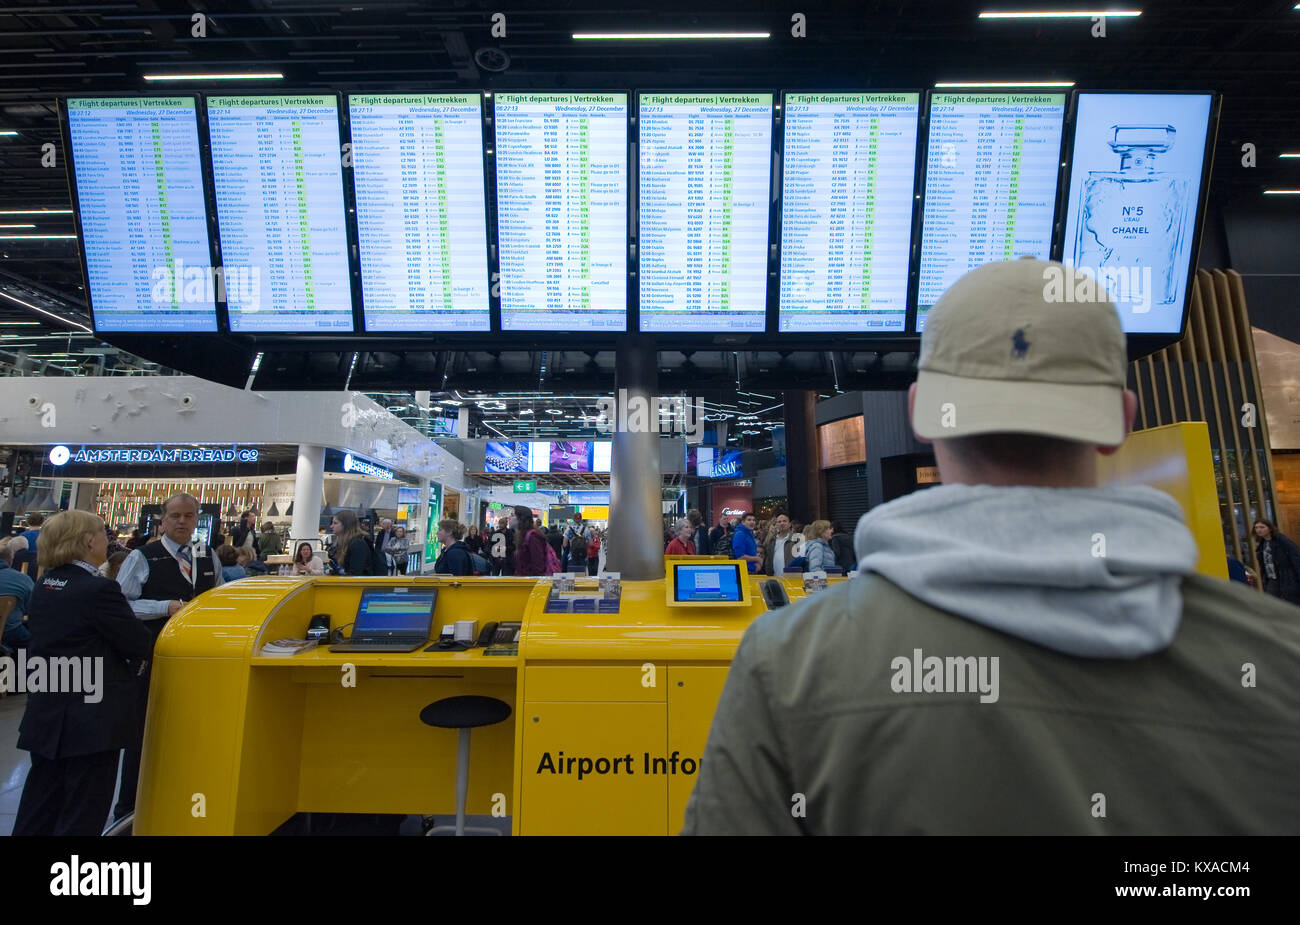 AMSTERDAM, NETHERLANDS - DEC 27, 2017: A man is looking at the information screens to check his flight on Schiphol - Stock Image